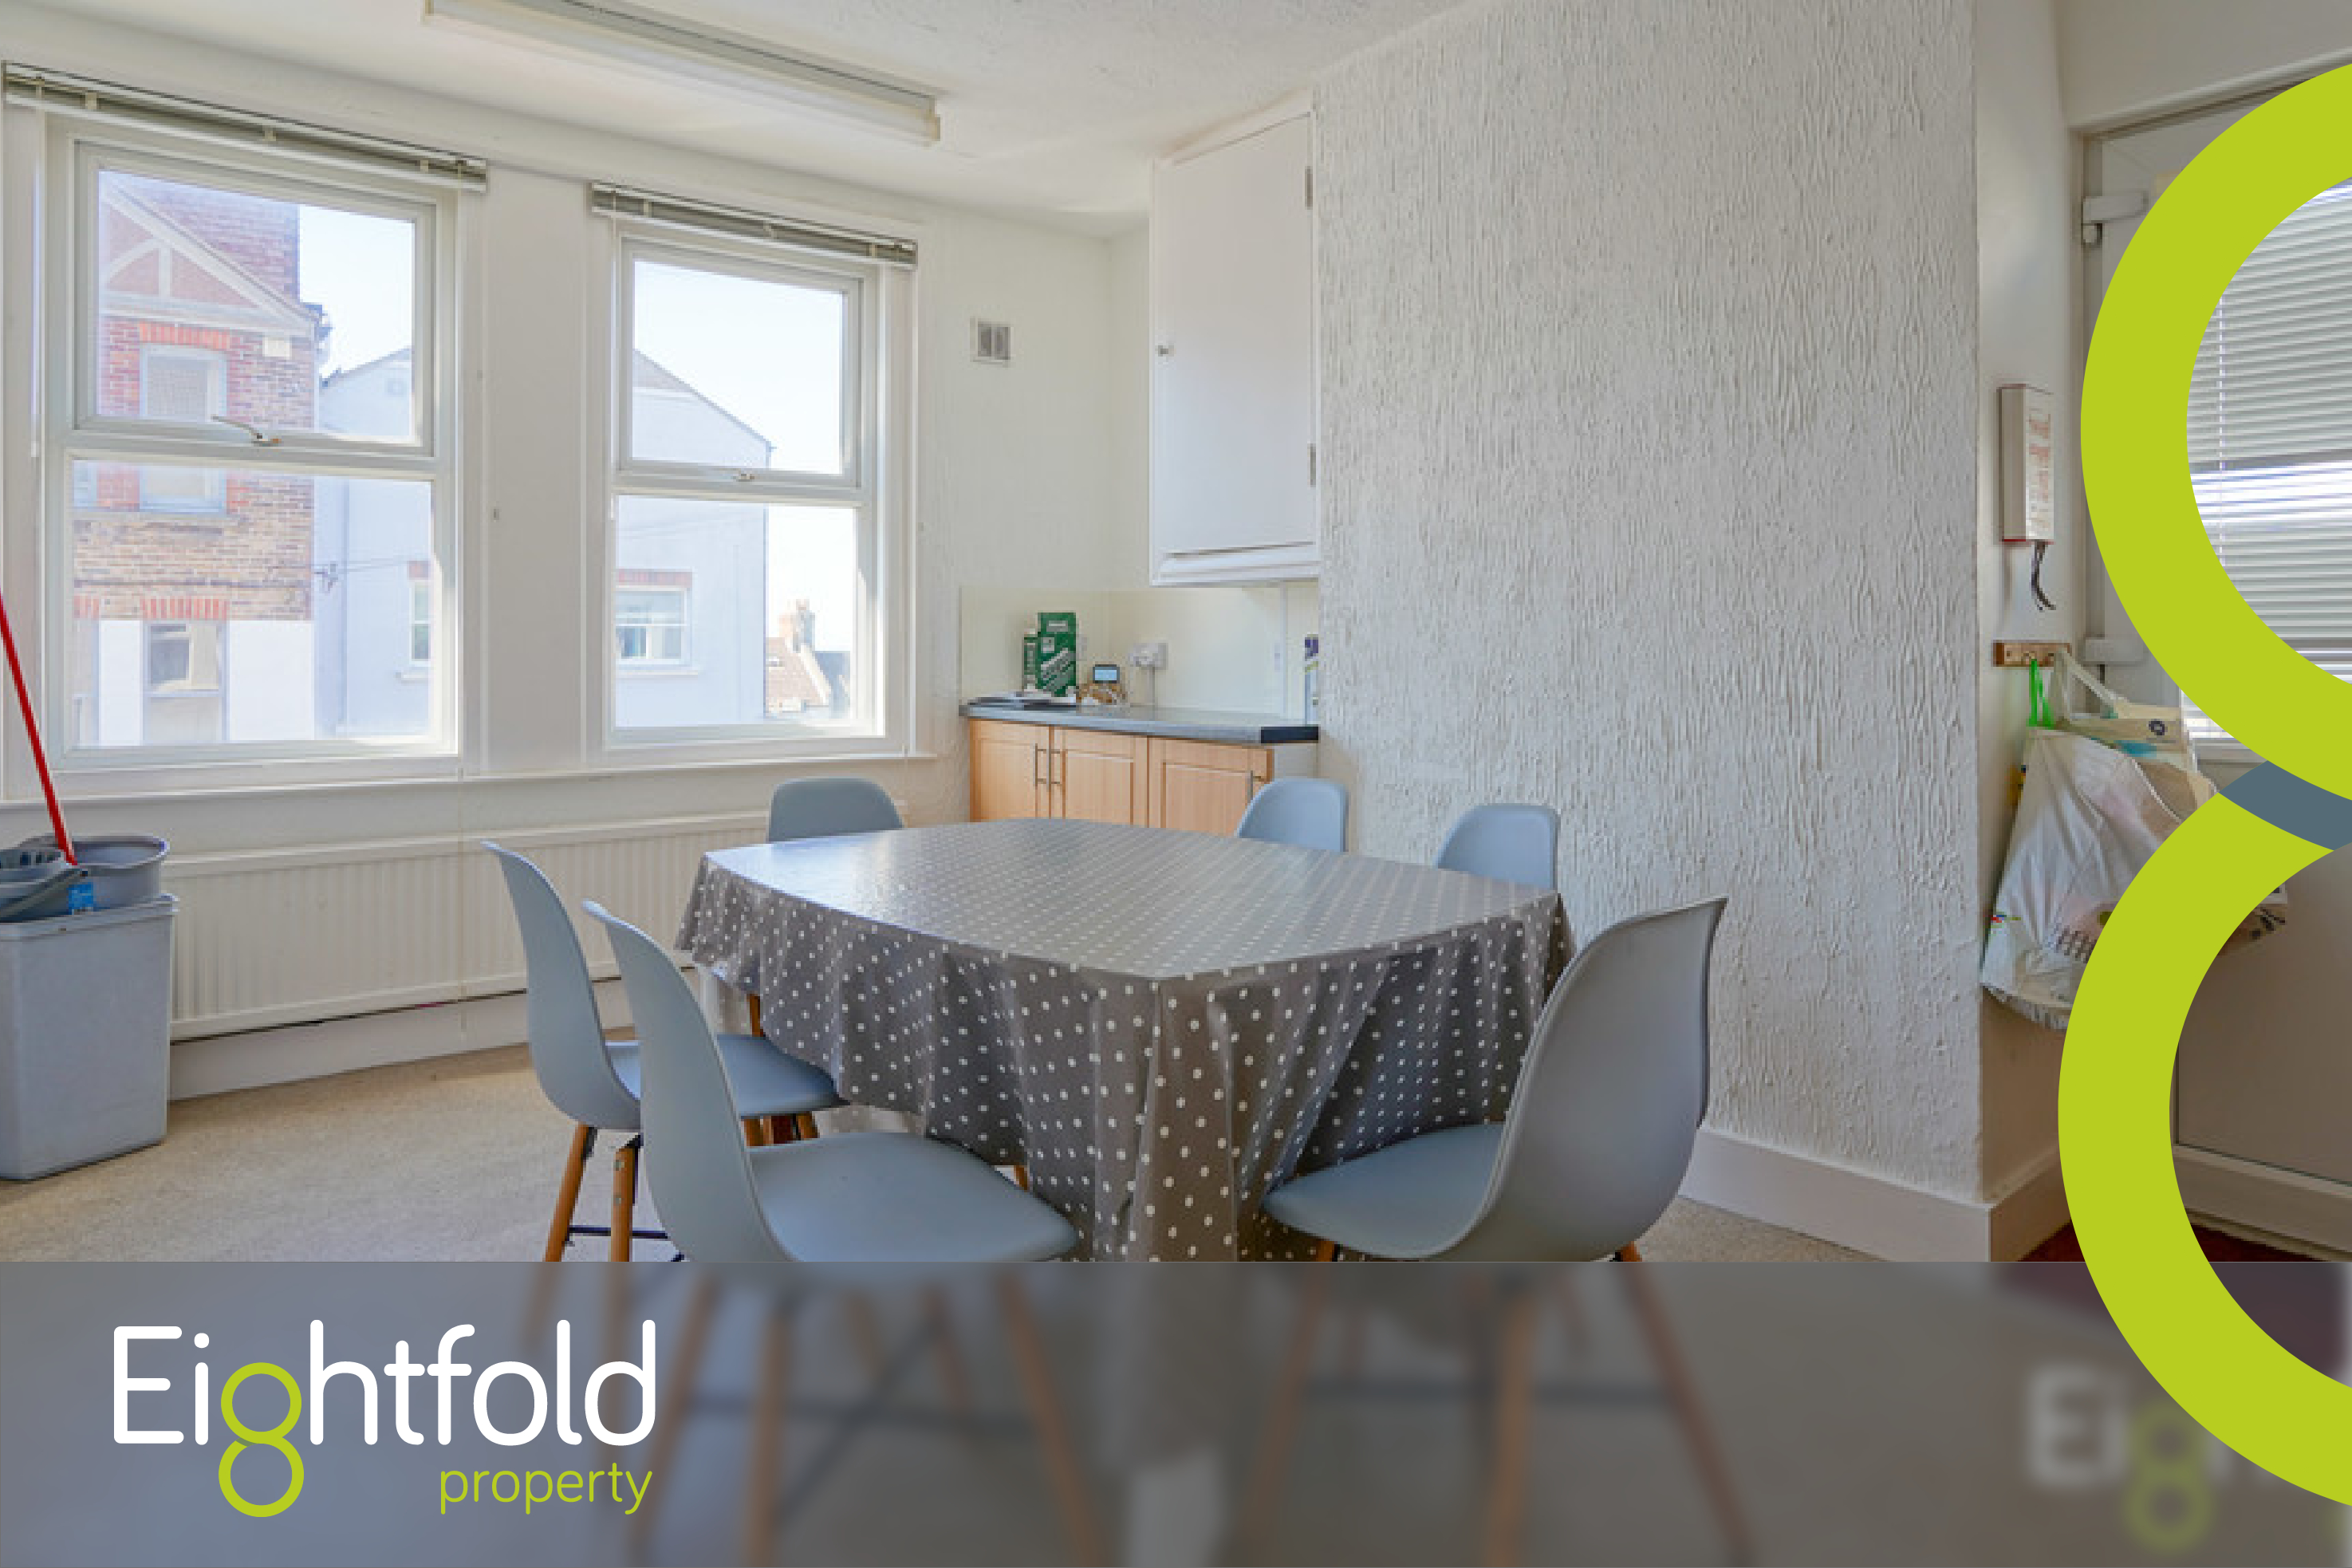 6 bed House (unspecified) for rent in Ovingdean. From Eightfold Property - Brighton